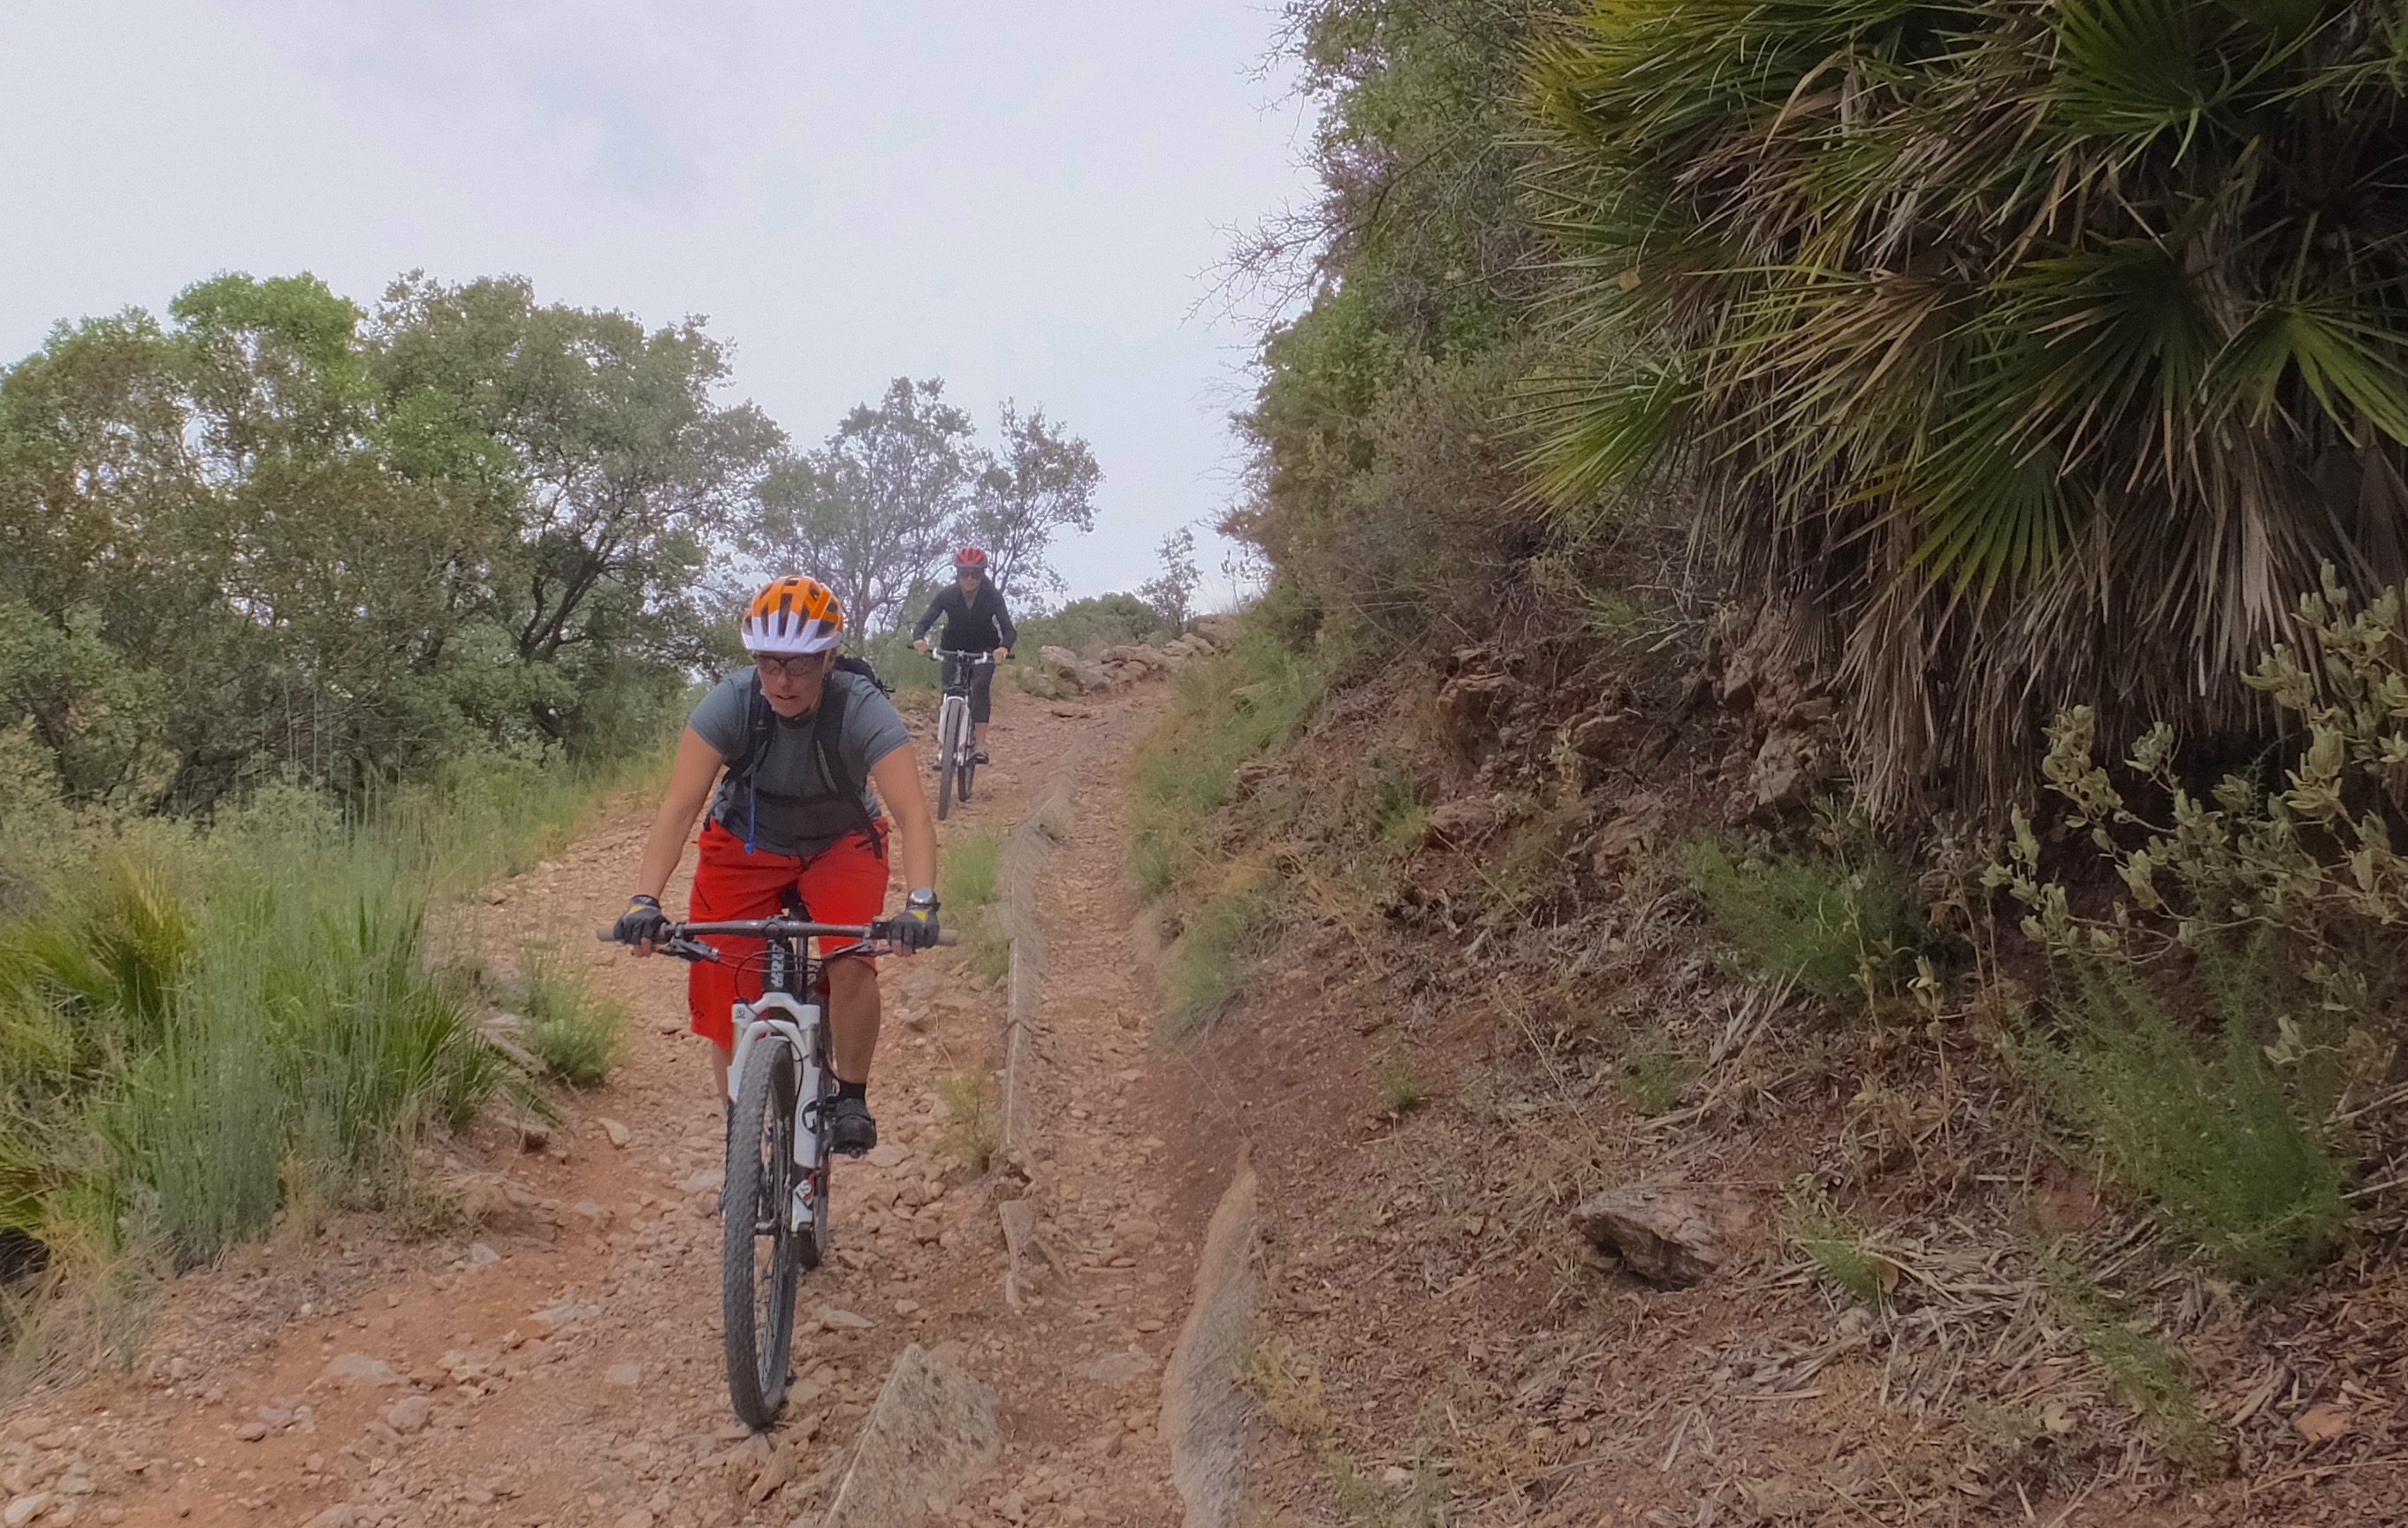 Mountain biking and single track holidays in Spain